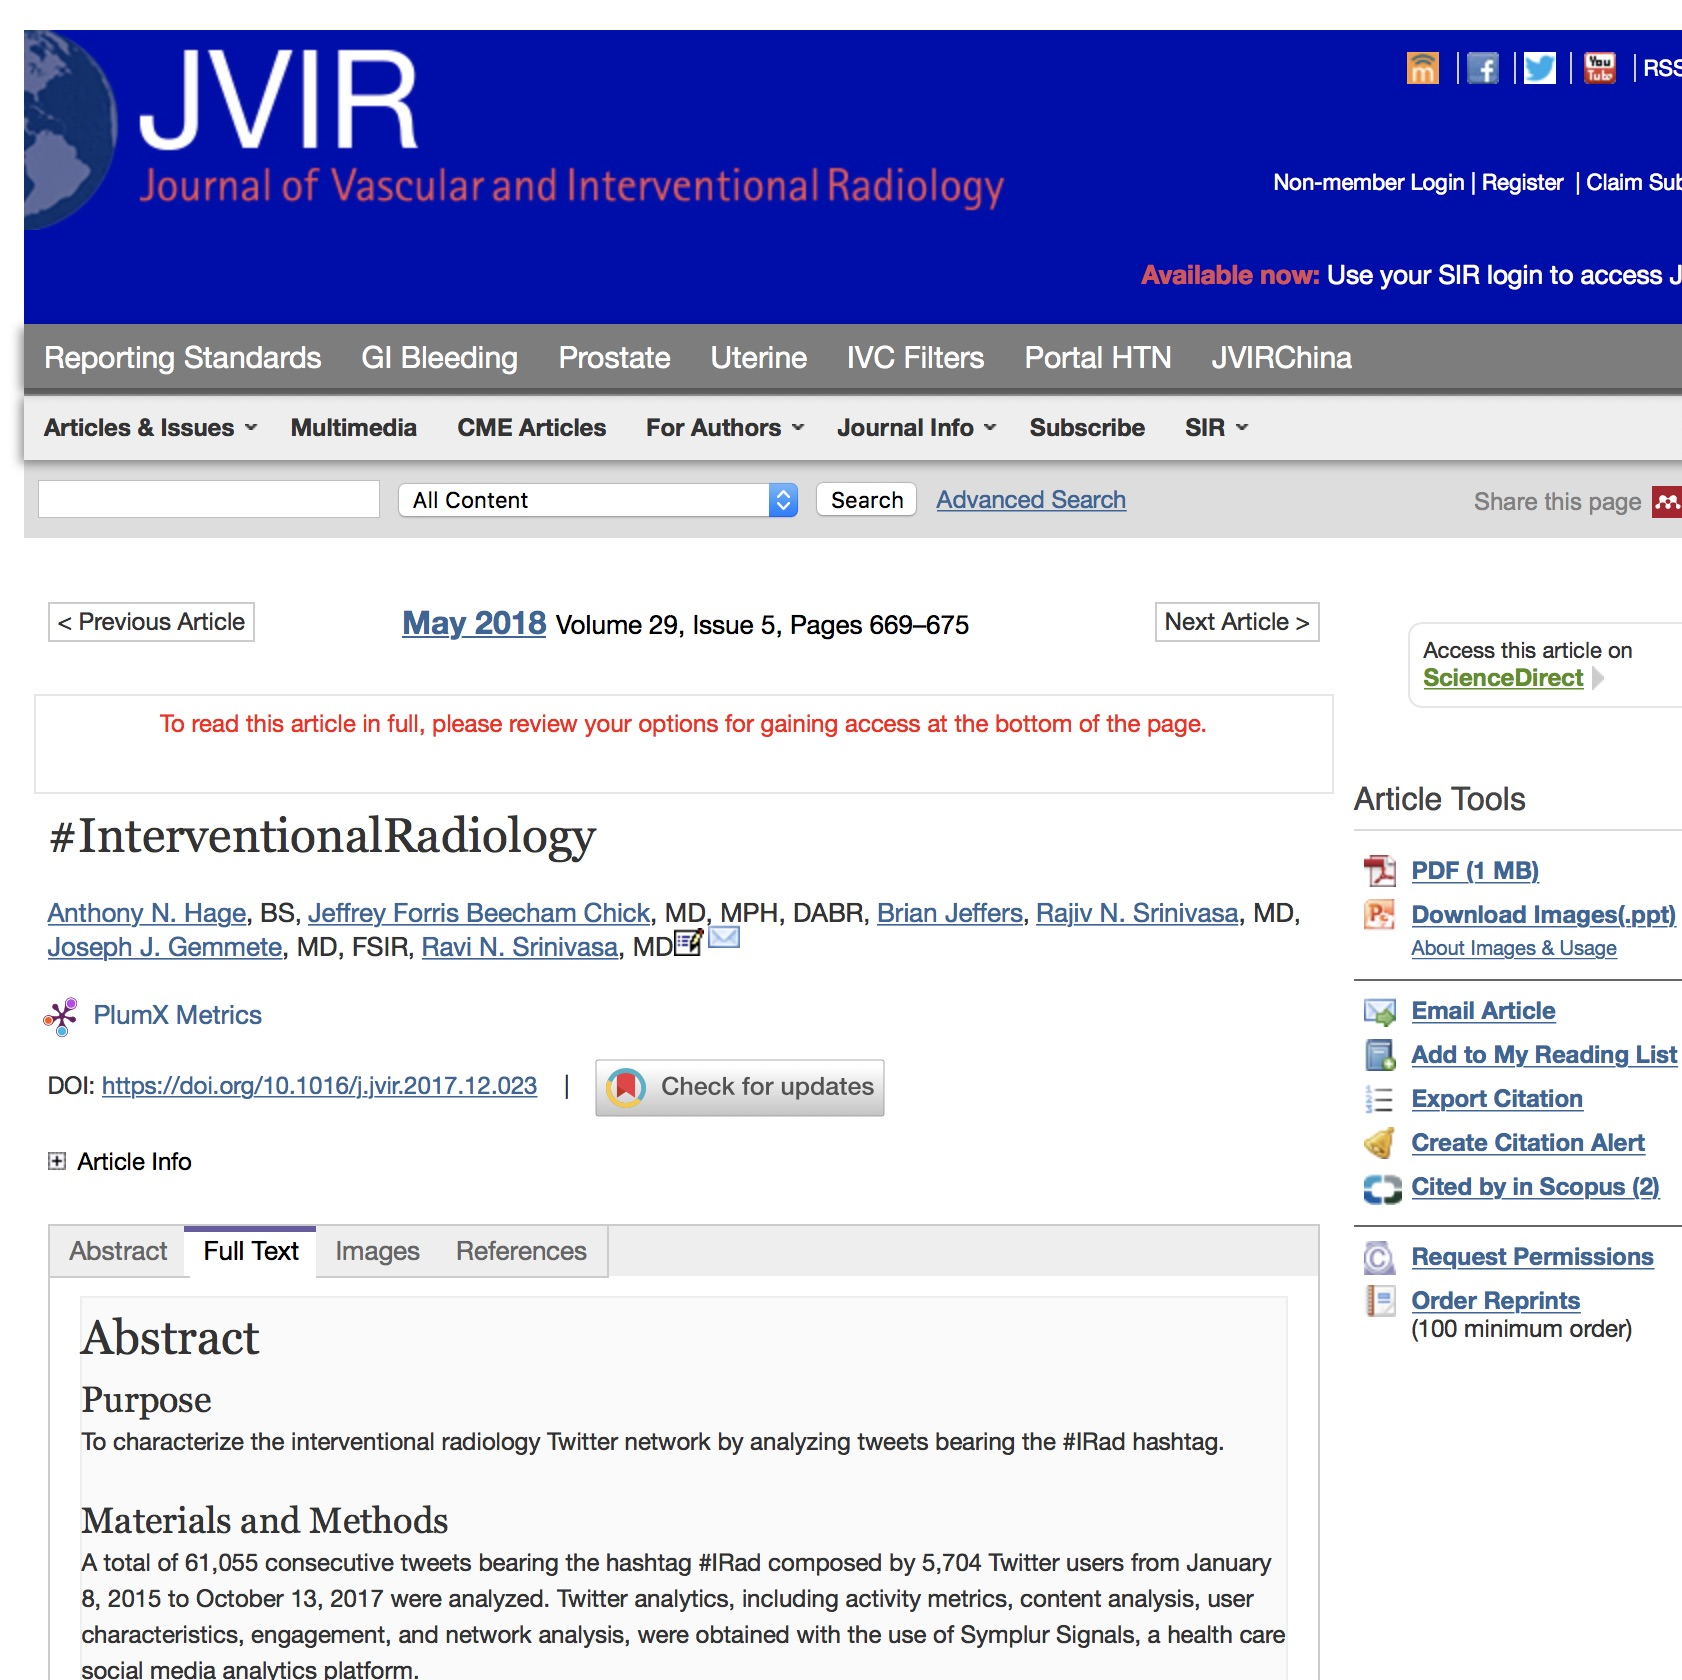 A healthcare social media research article published in Journal of Vascular and Interventional Radiology, May 1, 2018